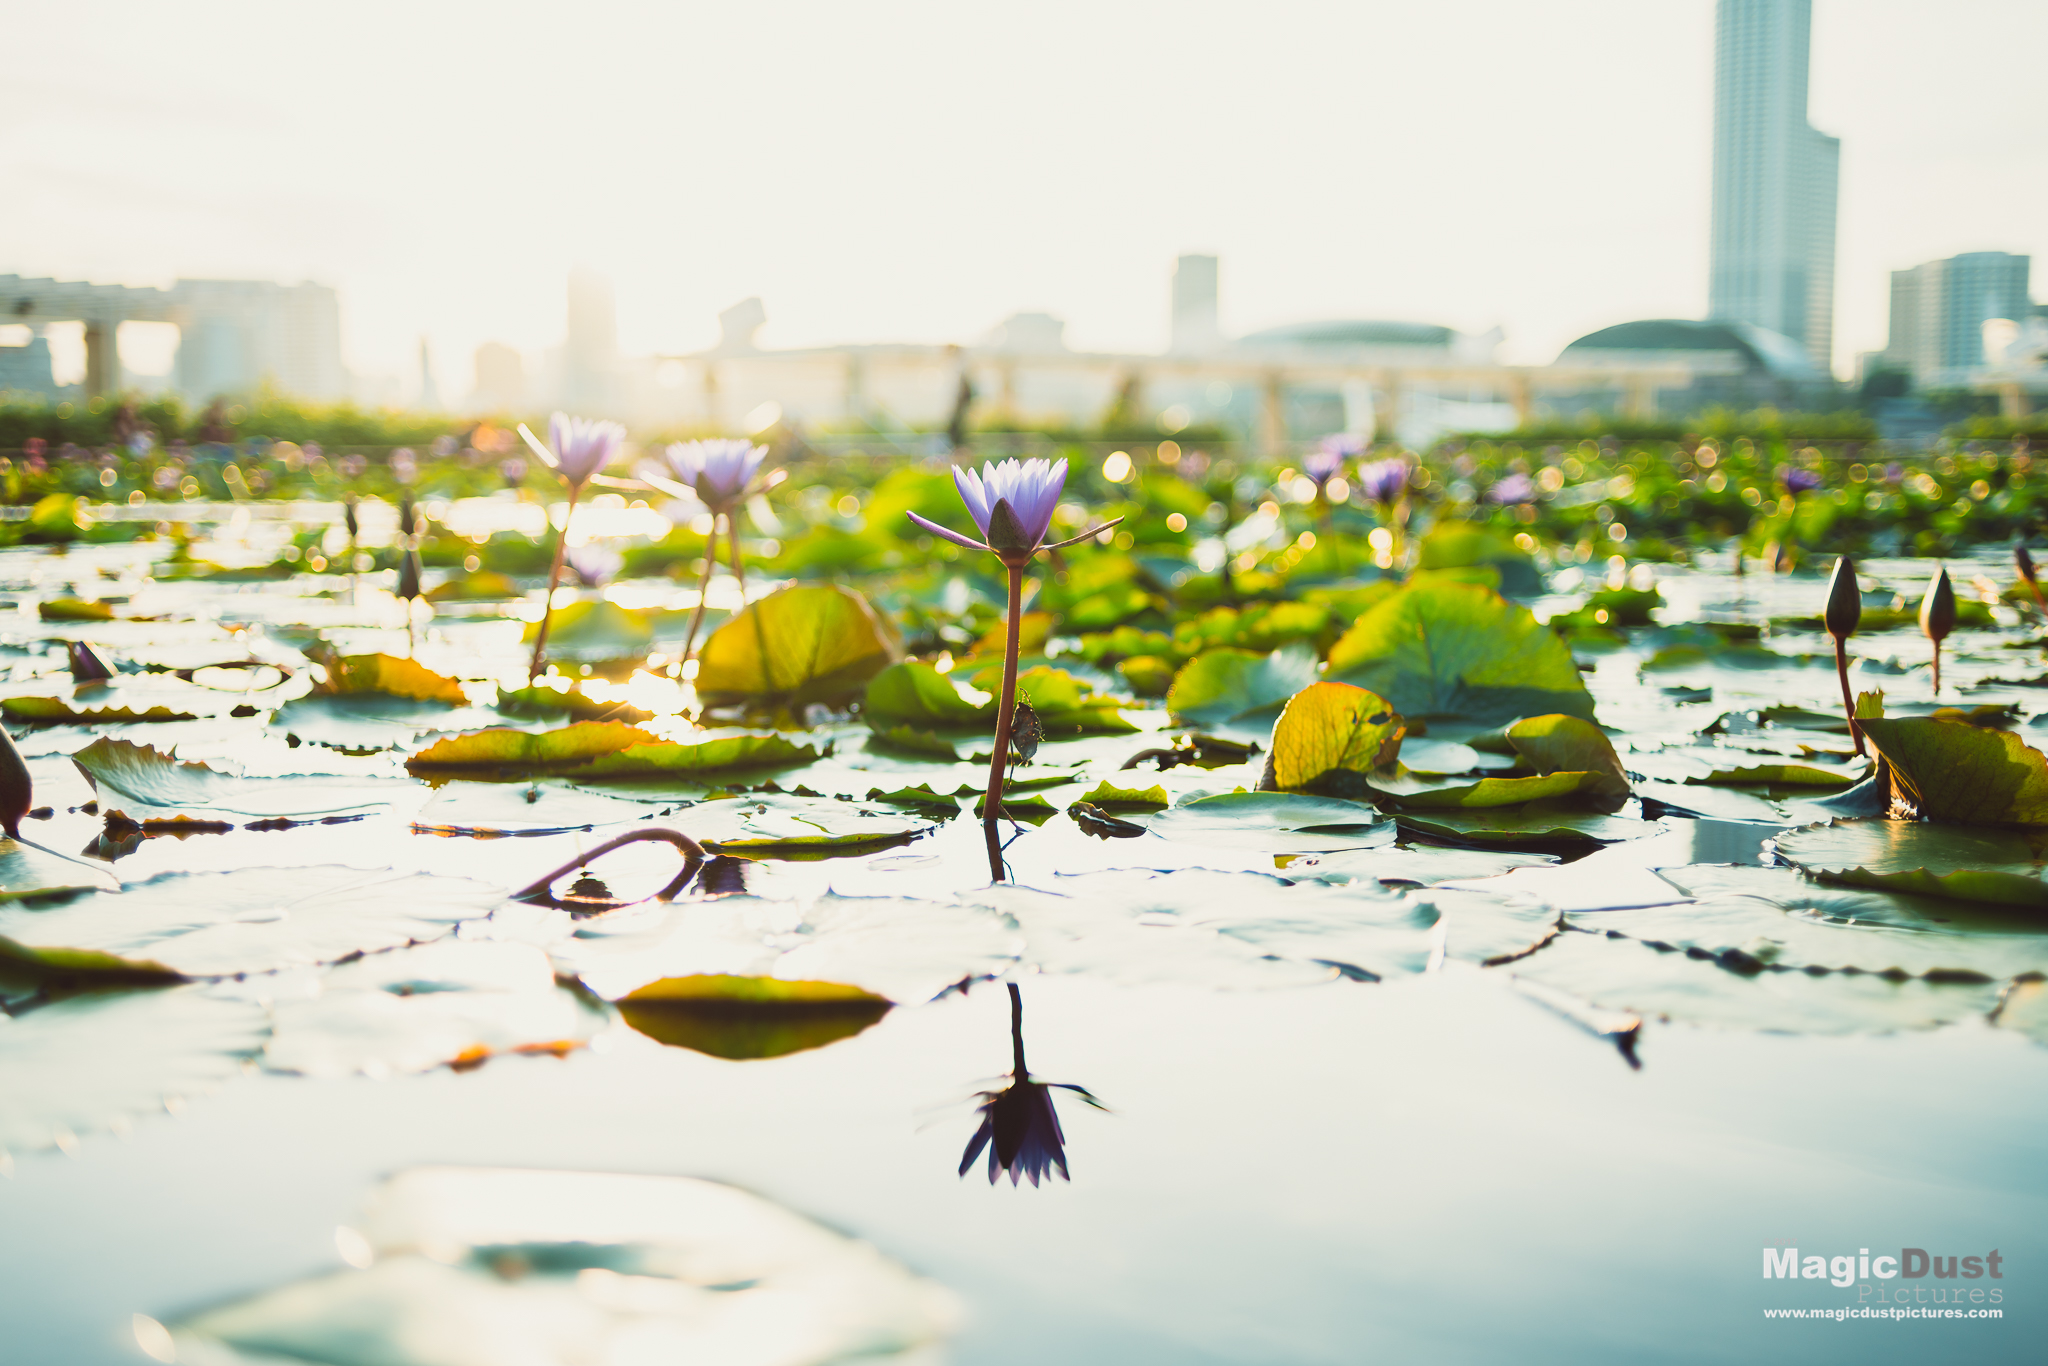 One of my favourite spots for a sunset shoot. The lotus pond at the MBS Art Science Museum.